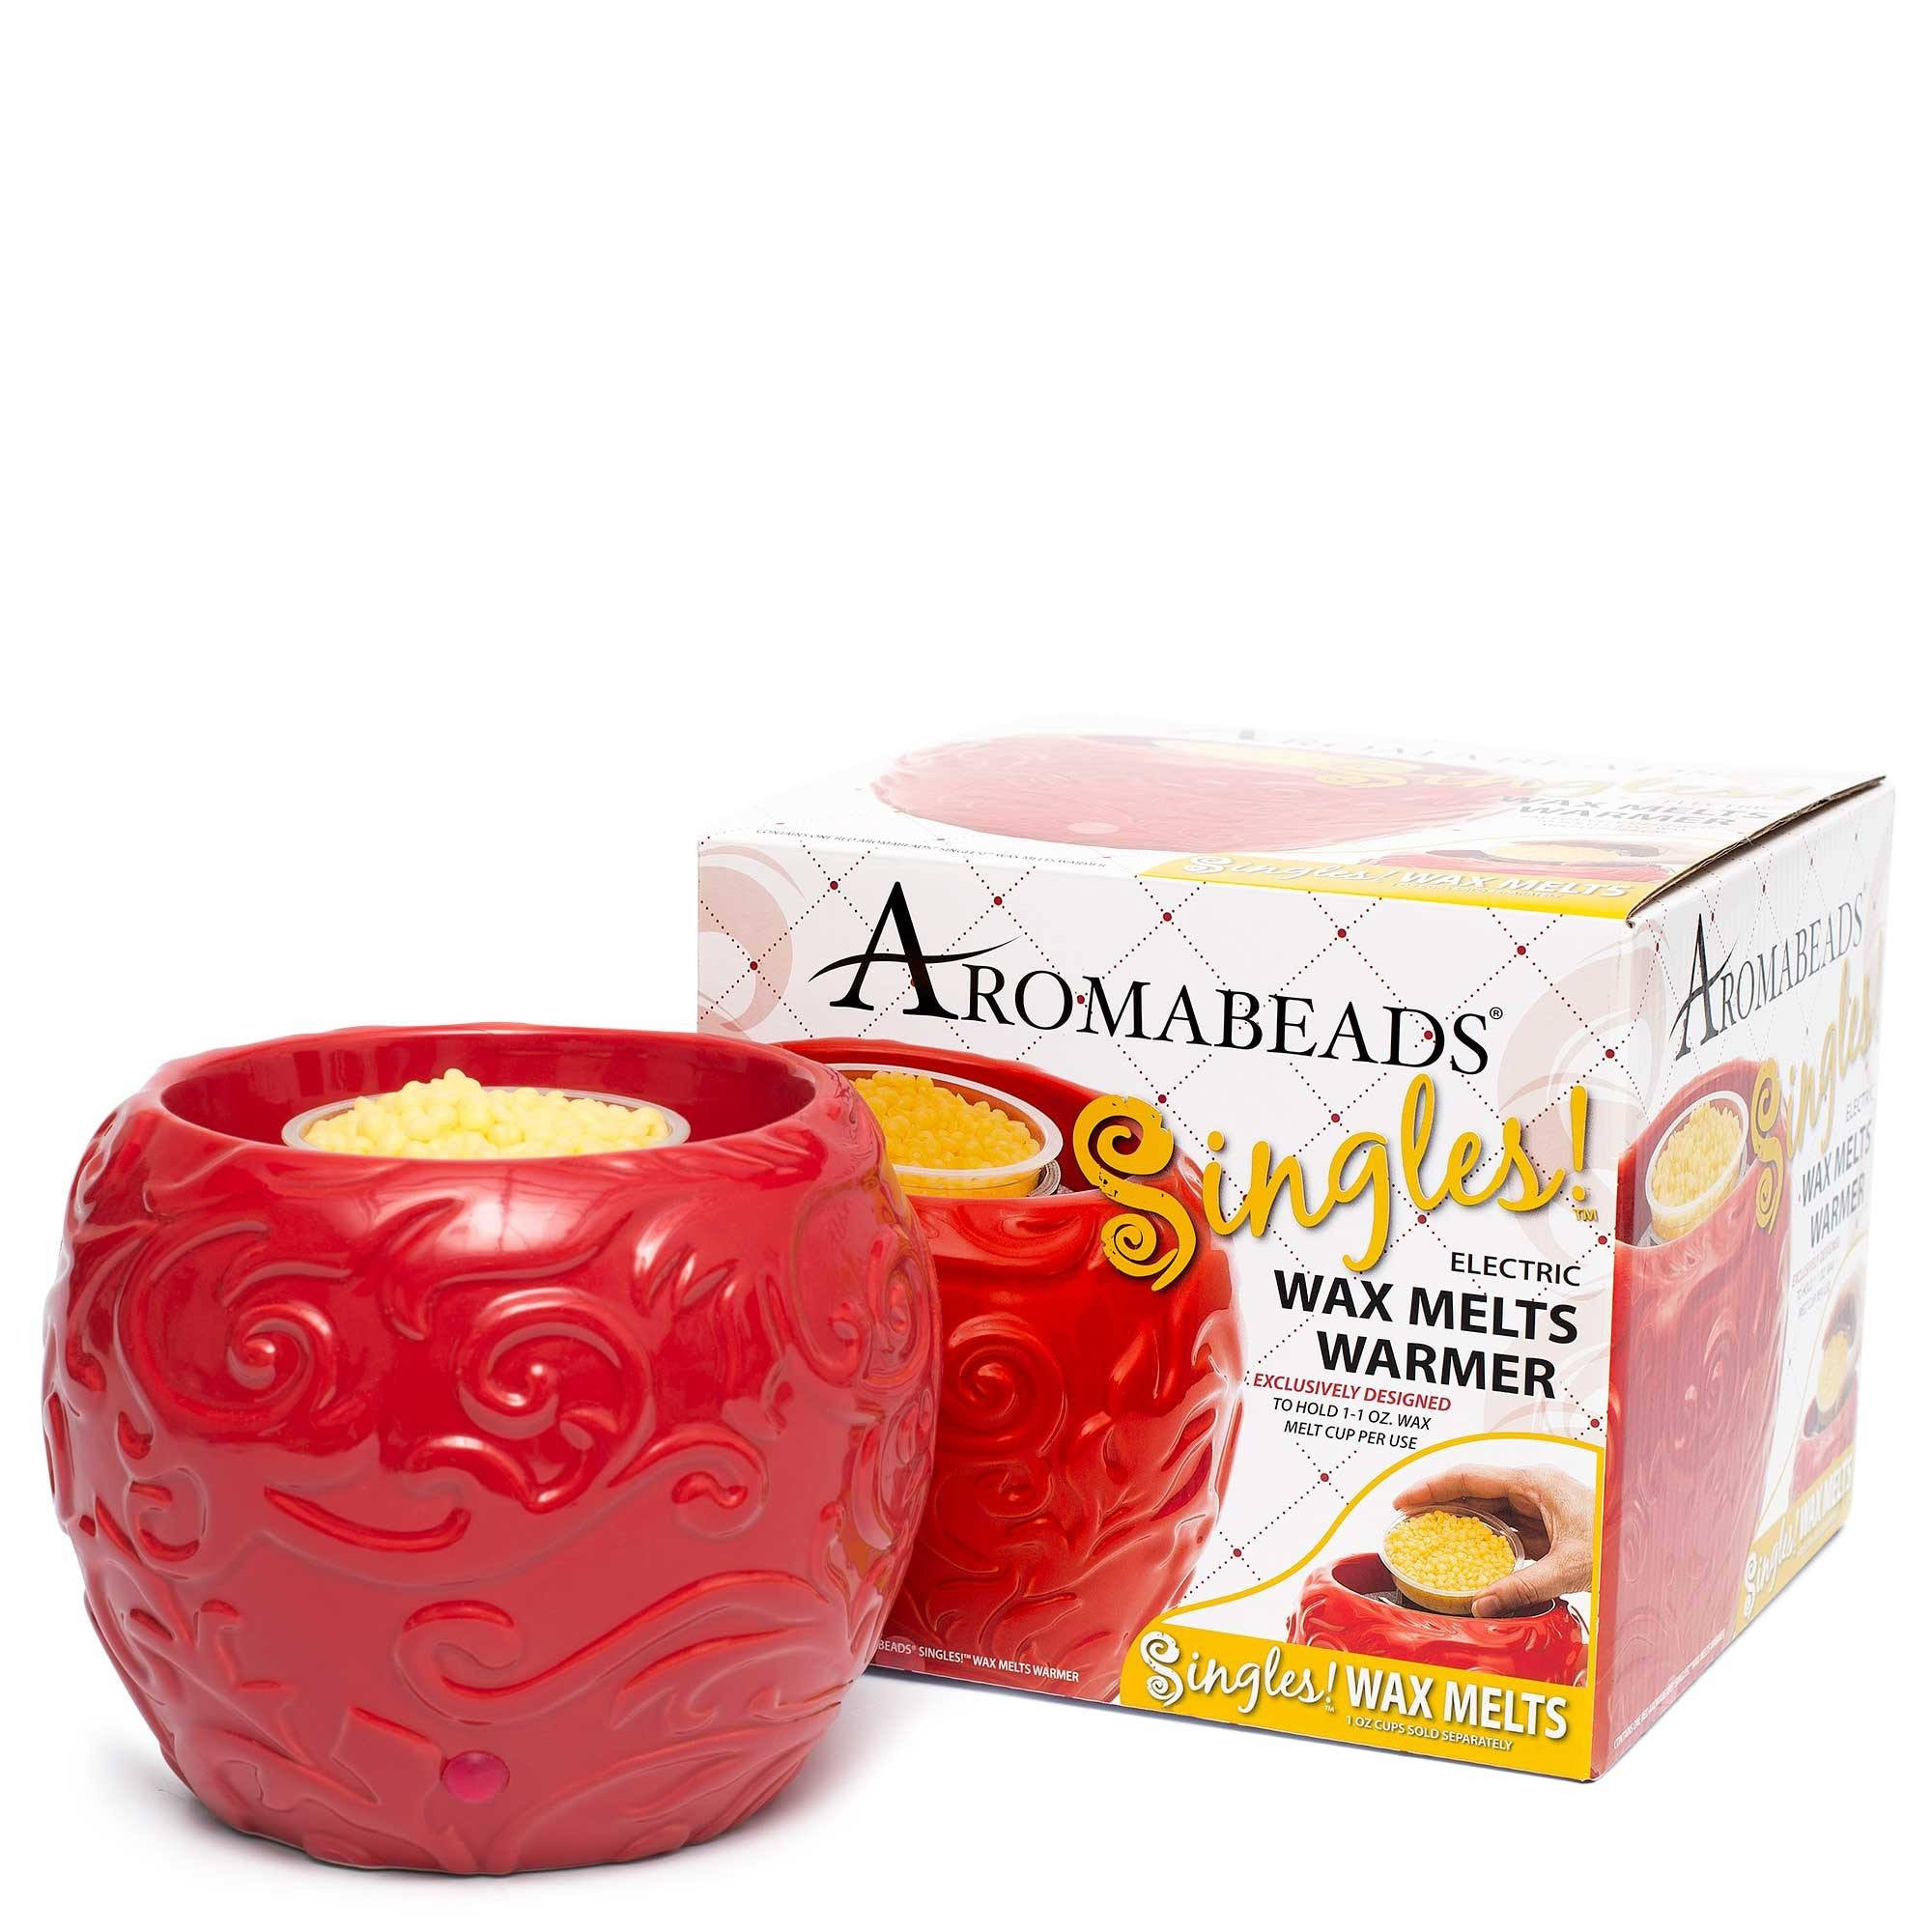 Aromabeads Singles Jasmine Breeze Scented Wax Melts Melts Candlemart.com $ 1.49